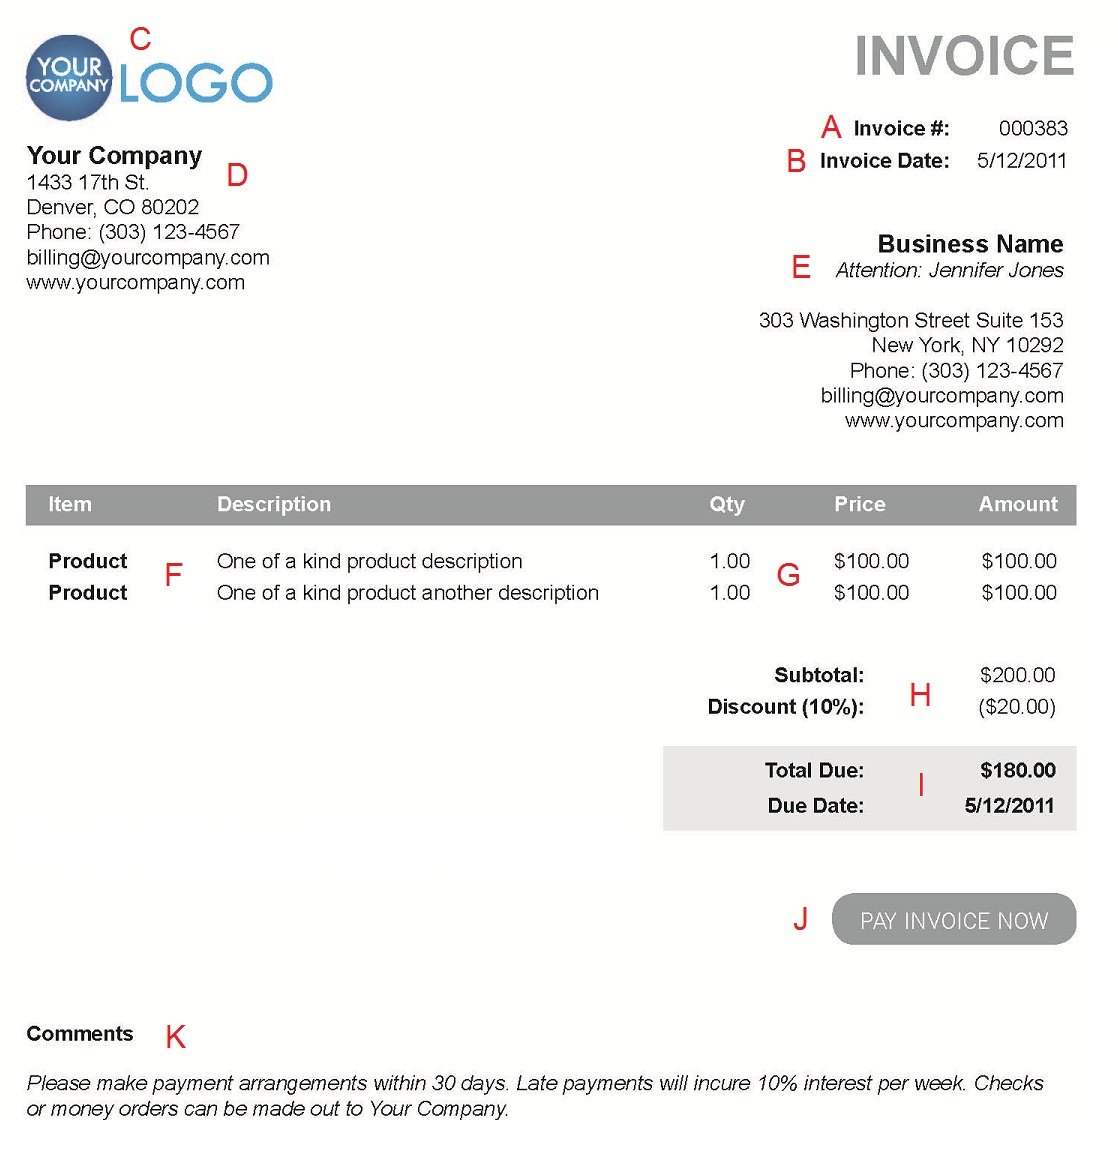 Maidofhonortoastus  Picturesque The  Different Sections Of An Electronic Payment Invoice With Great A  With Cute Make Invoice Template Also Invoice Shipping In Addition Invoice Of A Car And What Should Be On An Invoice As Well As Invoice Estimate Template Additionally Invoice In Paypal From Paysimplecom With Maidofhonortoastus  Great The  Different Sections Of An Electronic Payment Invoice With Cute A  And Picturesque Make Invoice Template Also Invoice Shipping In Addition Invoice Of A Car From Paysimplecom